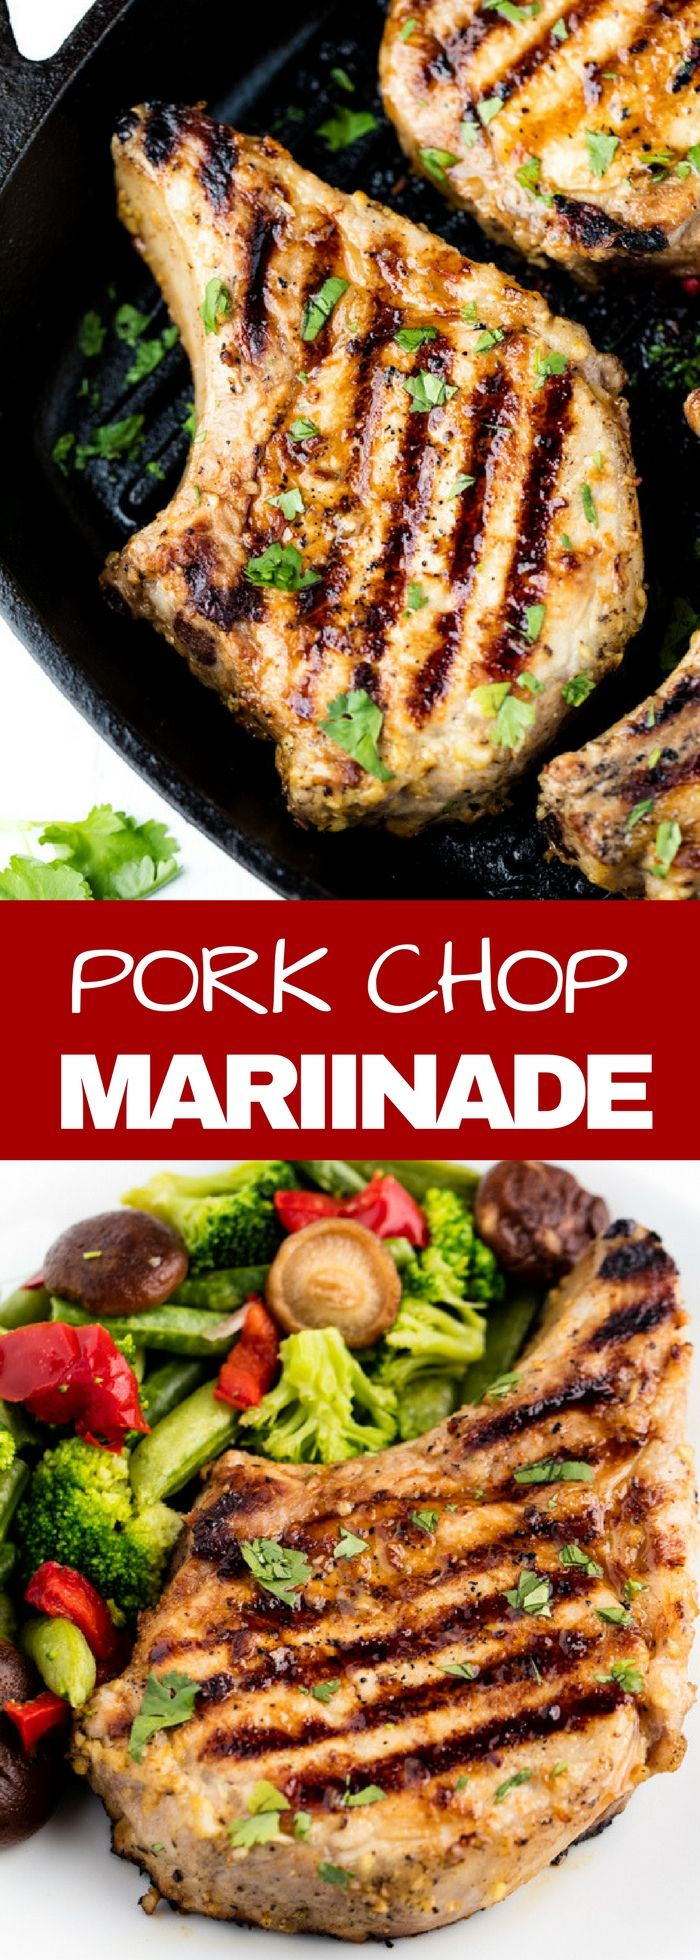 The Best Pork Chop Marinade is easy to make and perfect for any preparation of pork chops whether they are pan fried, baked, or grilled.